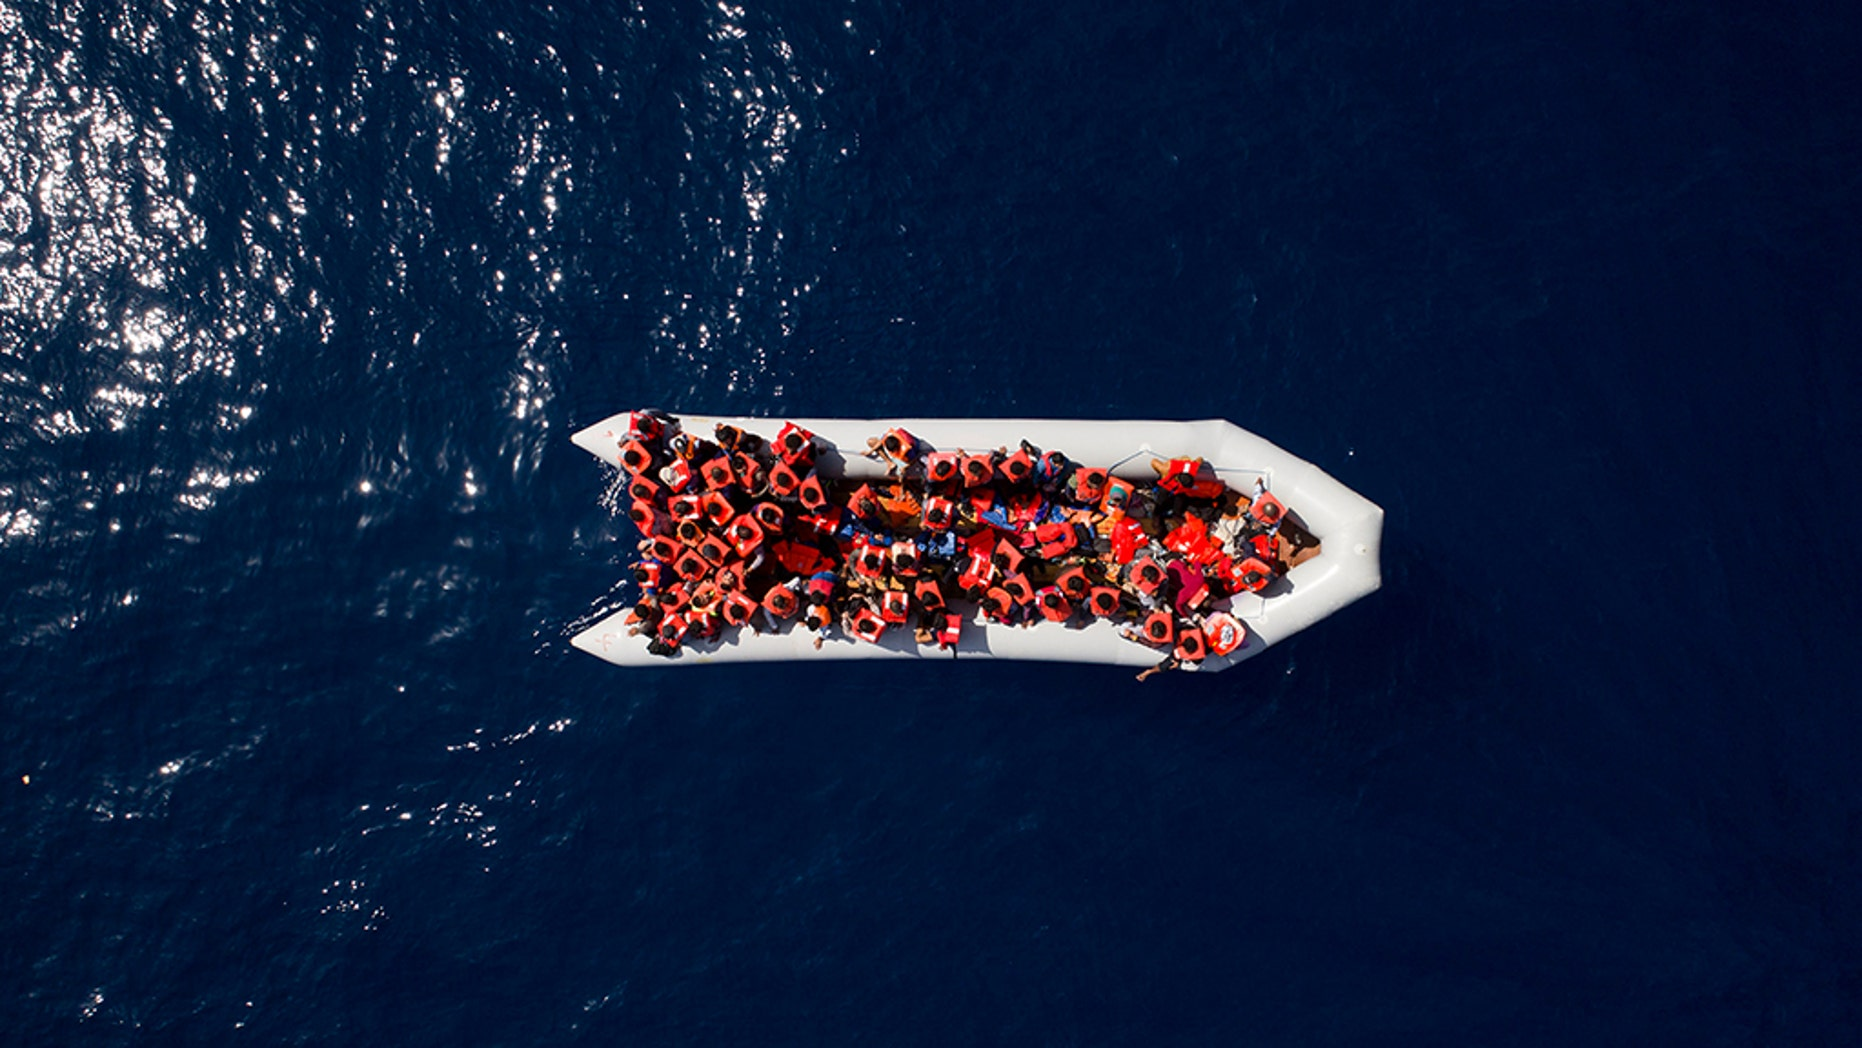 Some 46 migrants, including nine women, drowned in the Gulf of Aden, officials said.